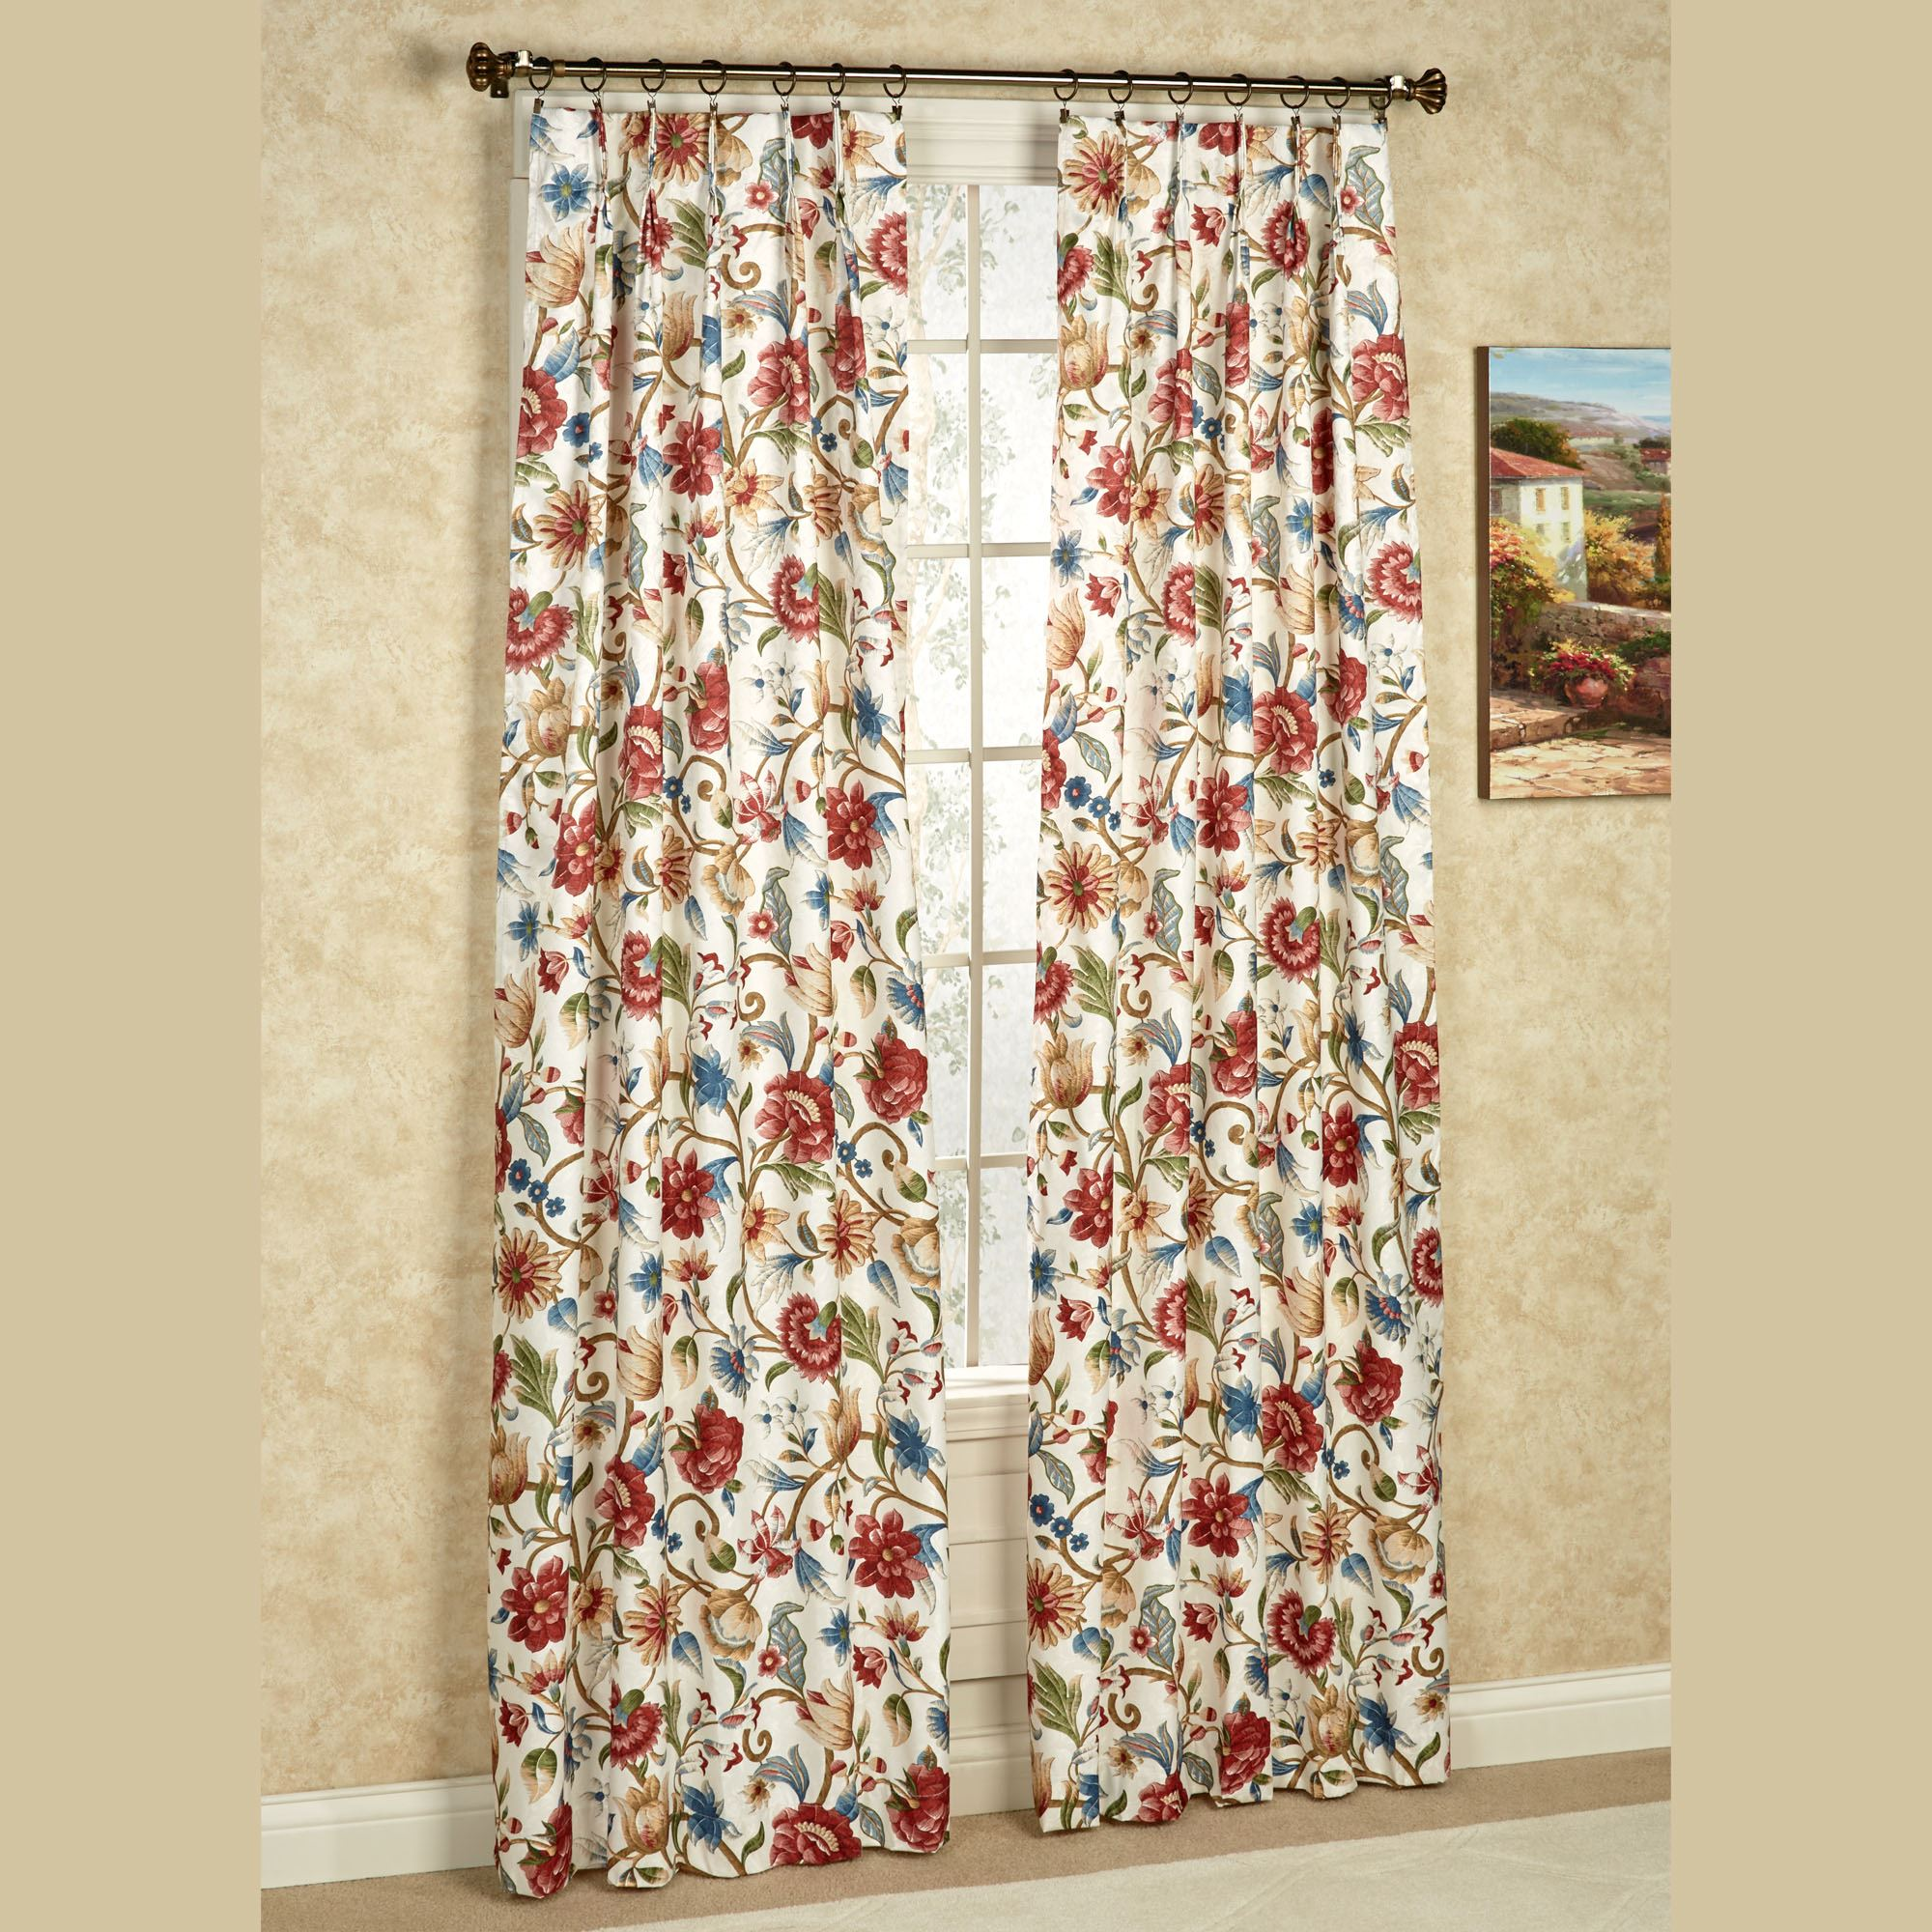 curtains leaf embroidered amrapur x pair overseas curtain garden panel subcat drapes floral pattern home swirl less overstock for